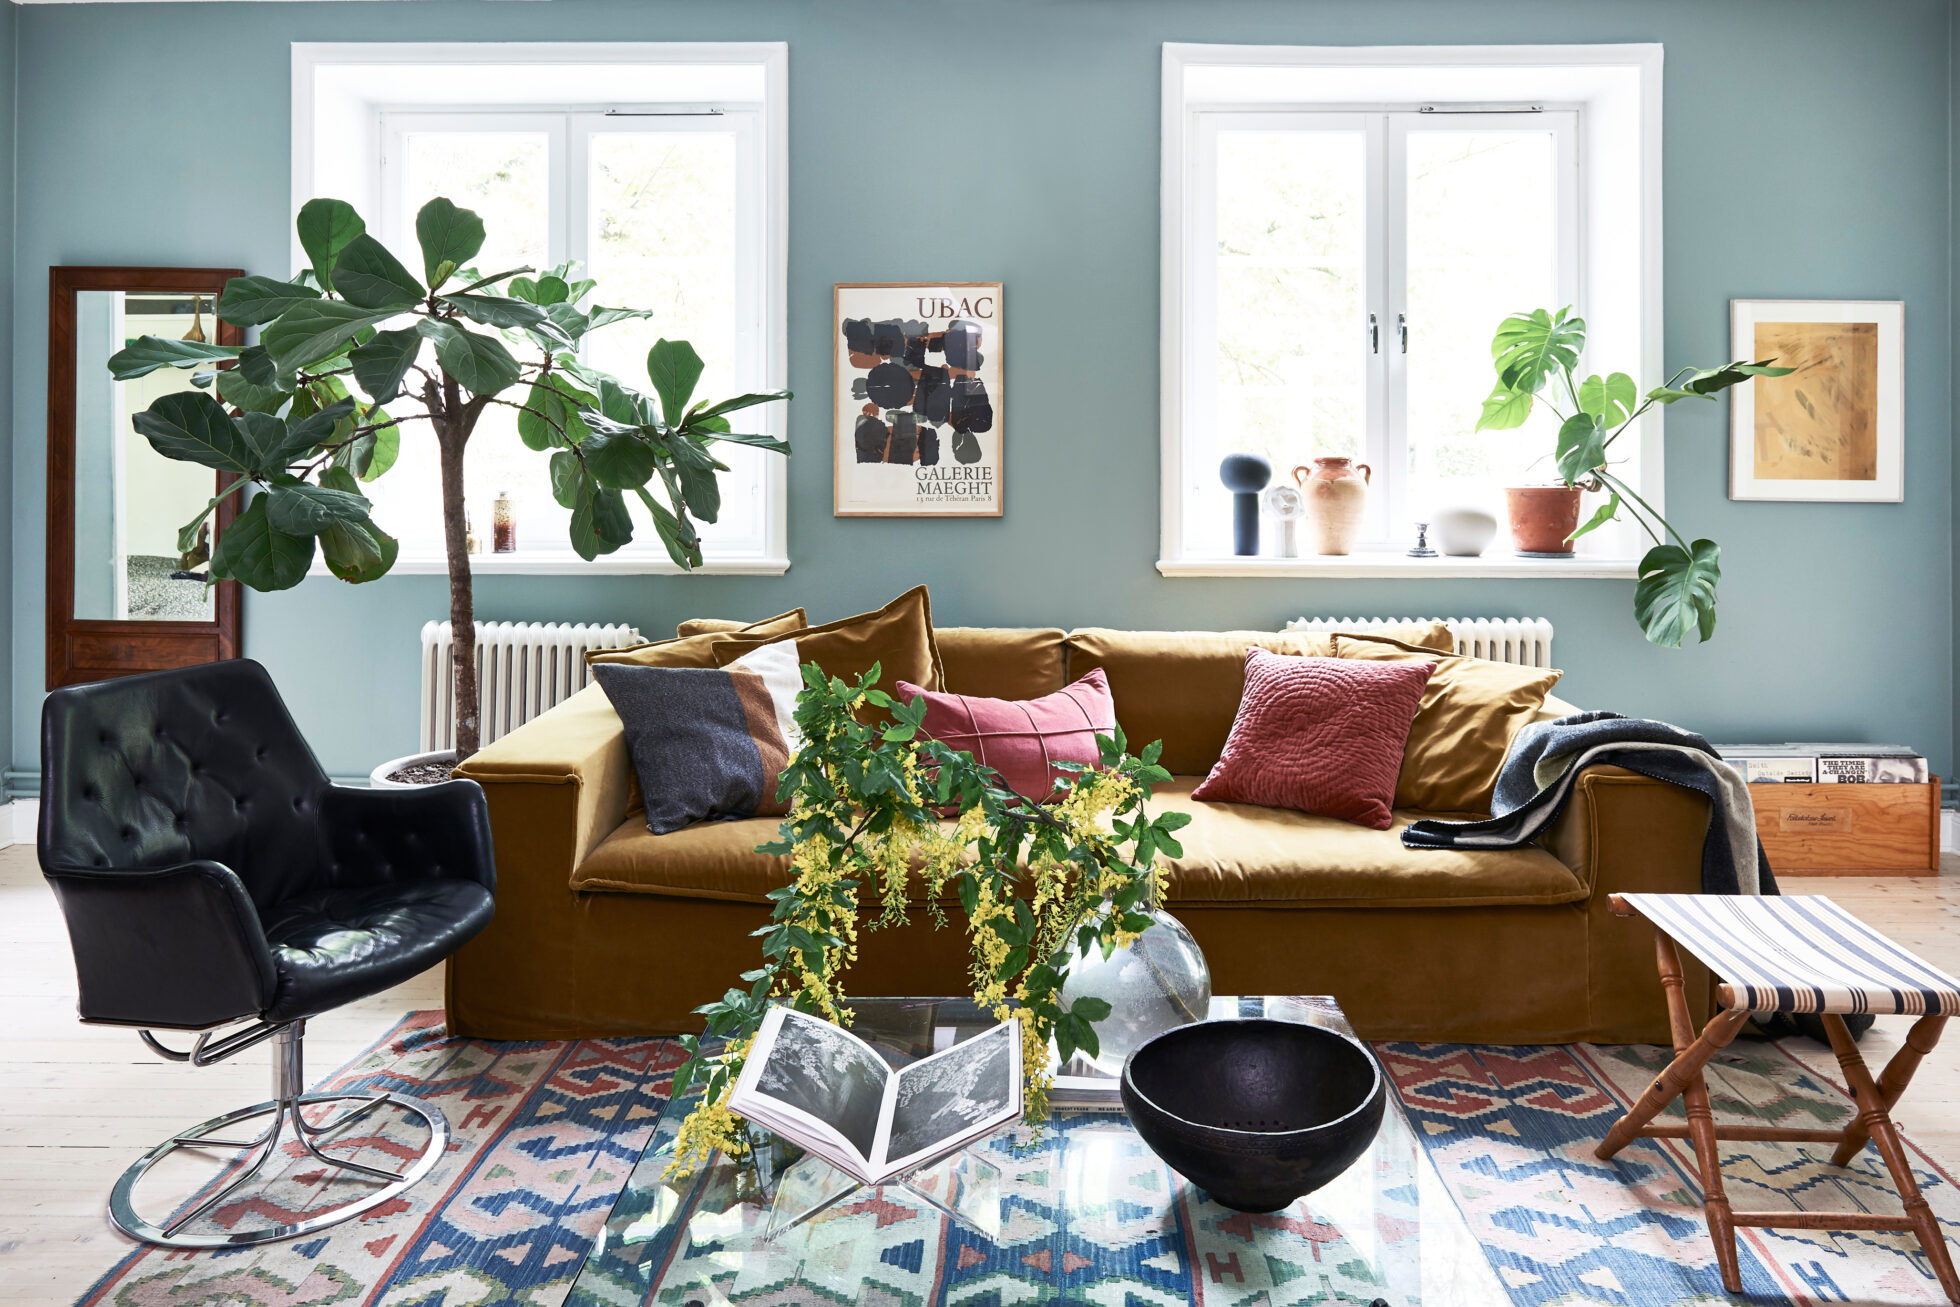 The Nordroom - A Stockholm Apartment With Bohemian and Natural Touches